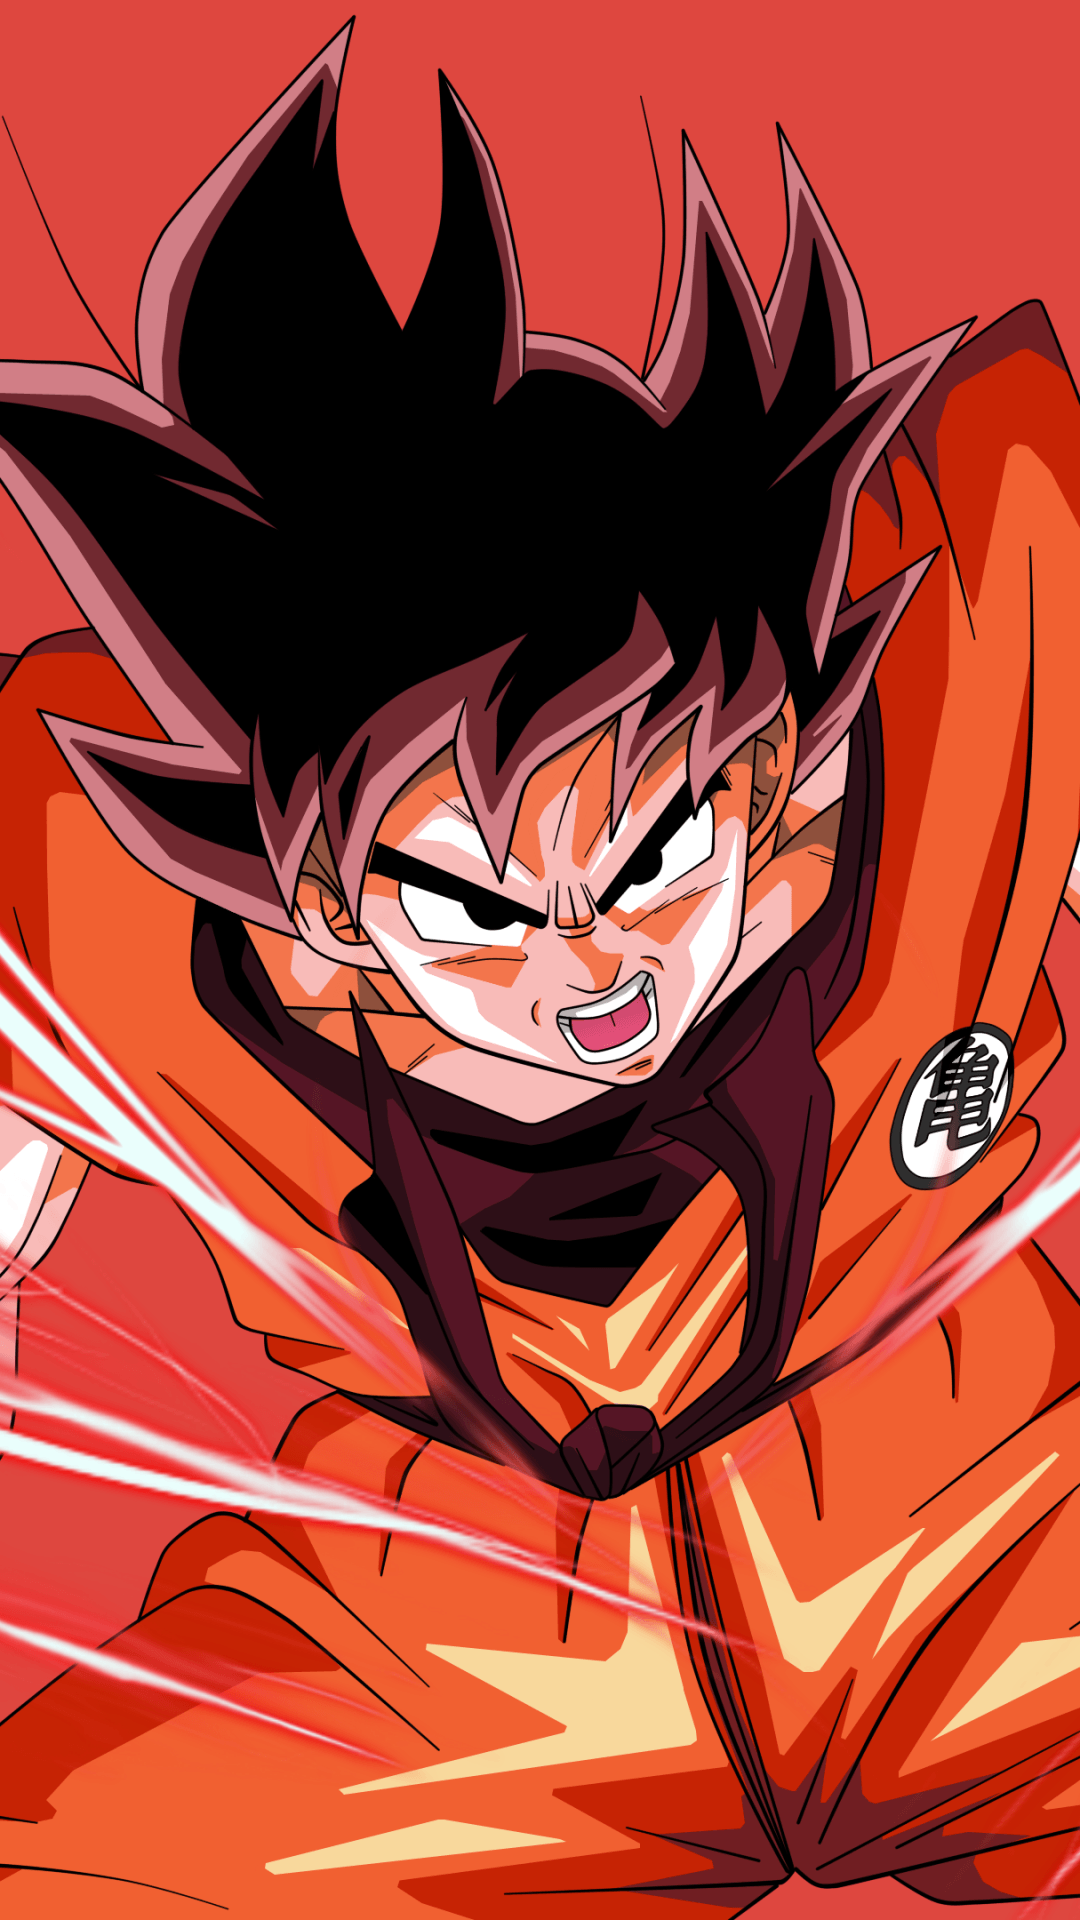 Anime/Dragon Ball Z (1080x1920) Wallpaper ID: 632506 - Mobile Abyss